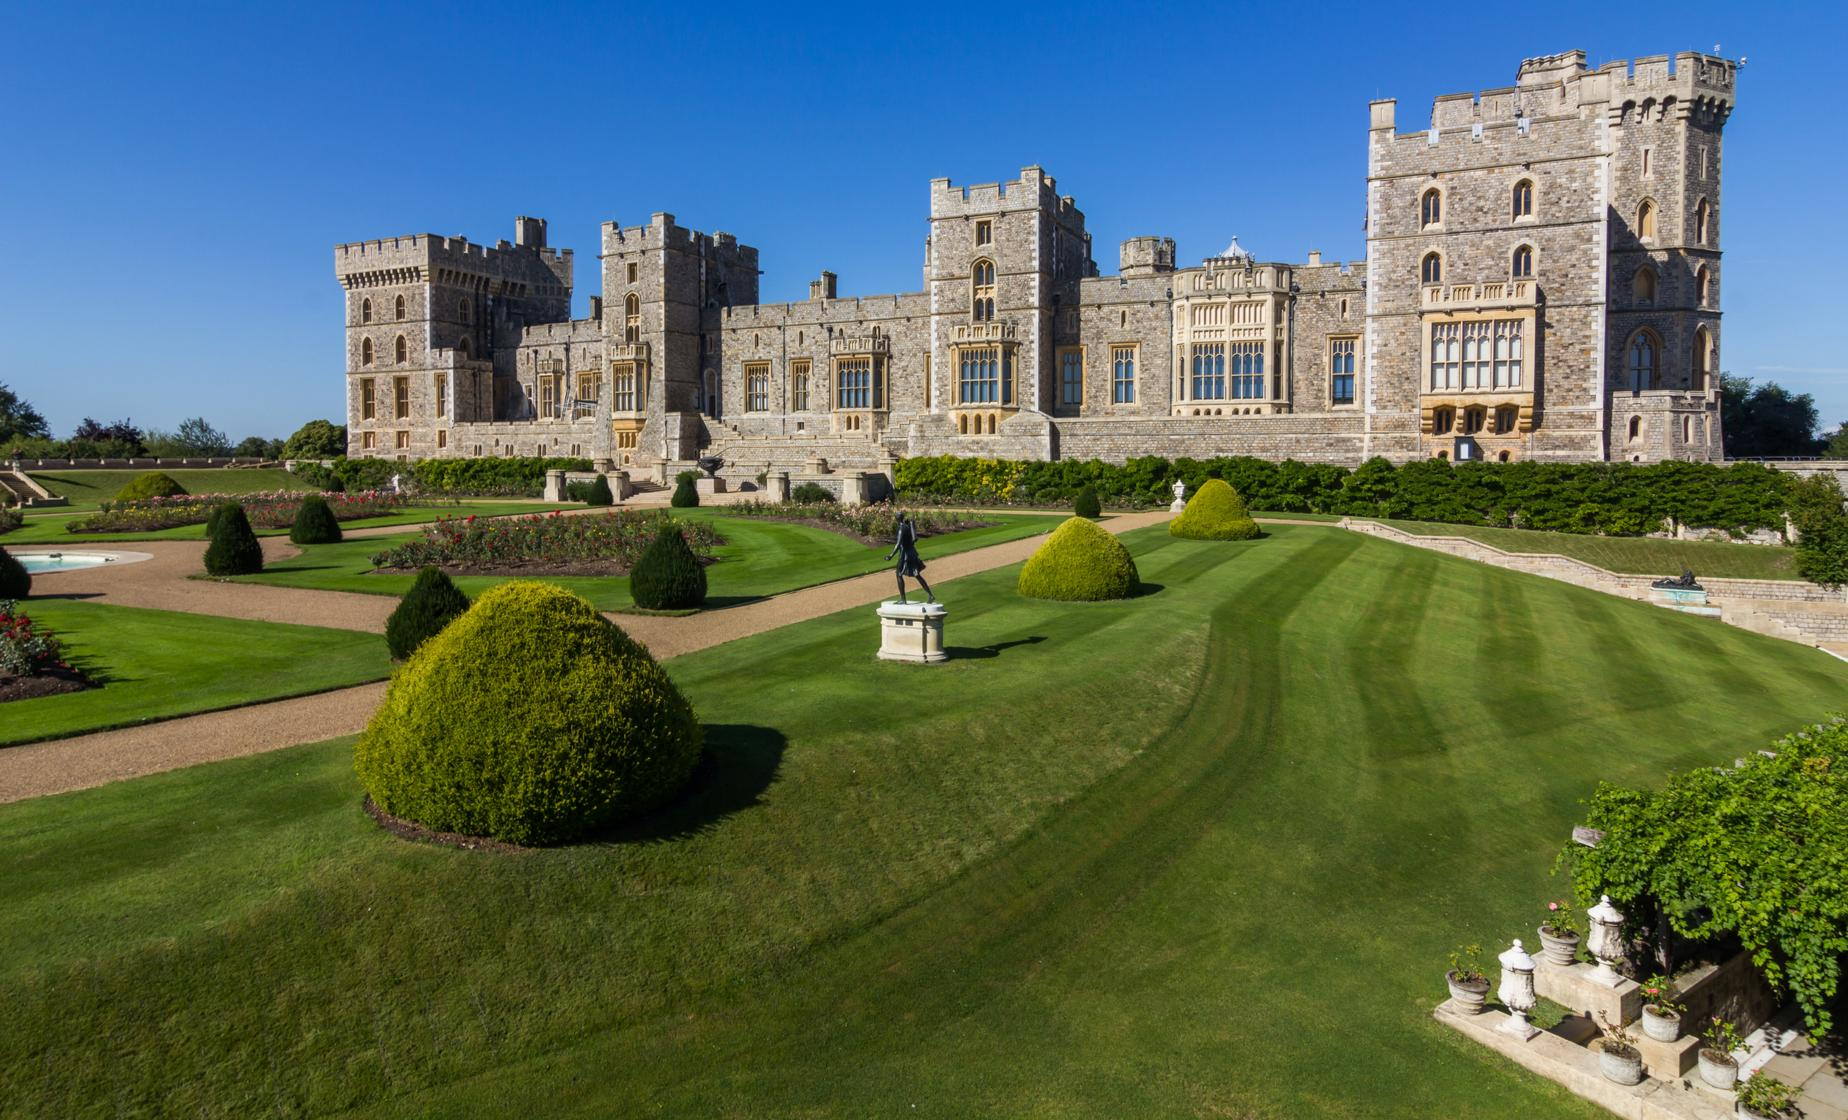 Windsor, Bath, & Stonehenge with Roman Baths Tour (River Thames, Runnymede)